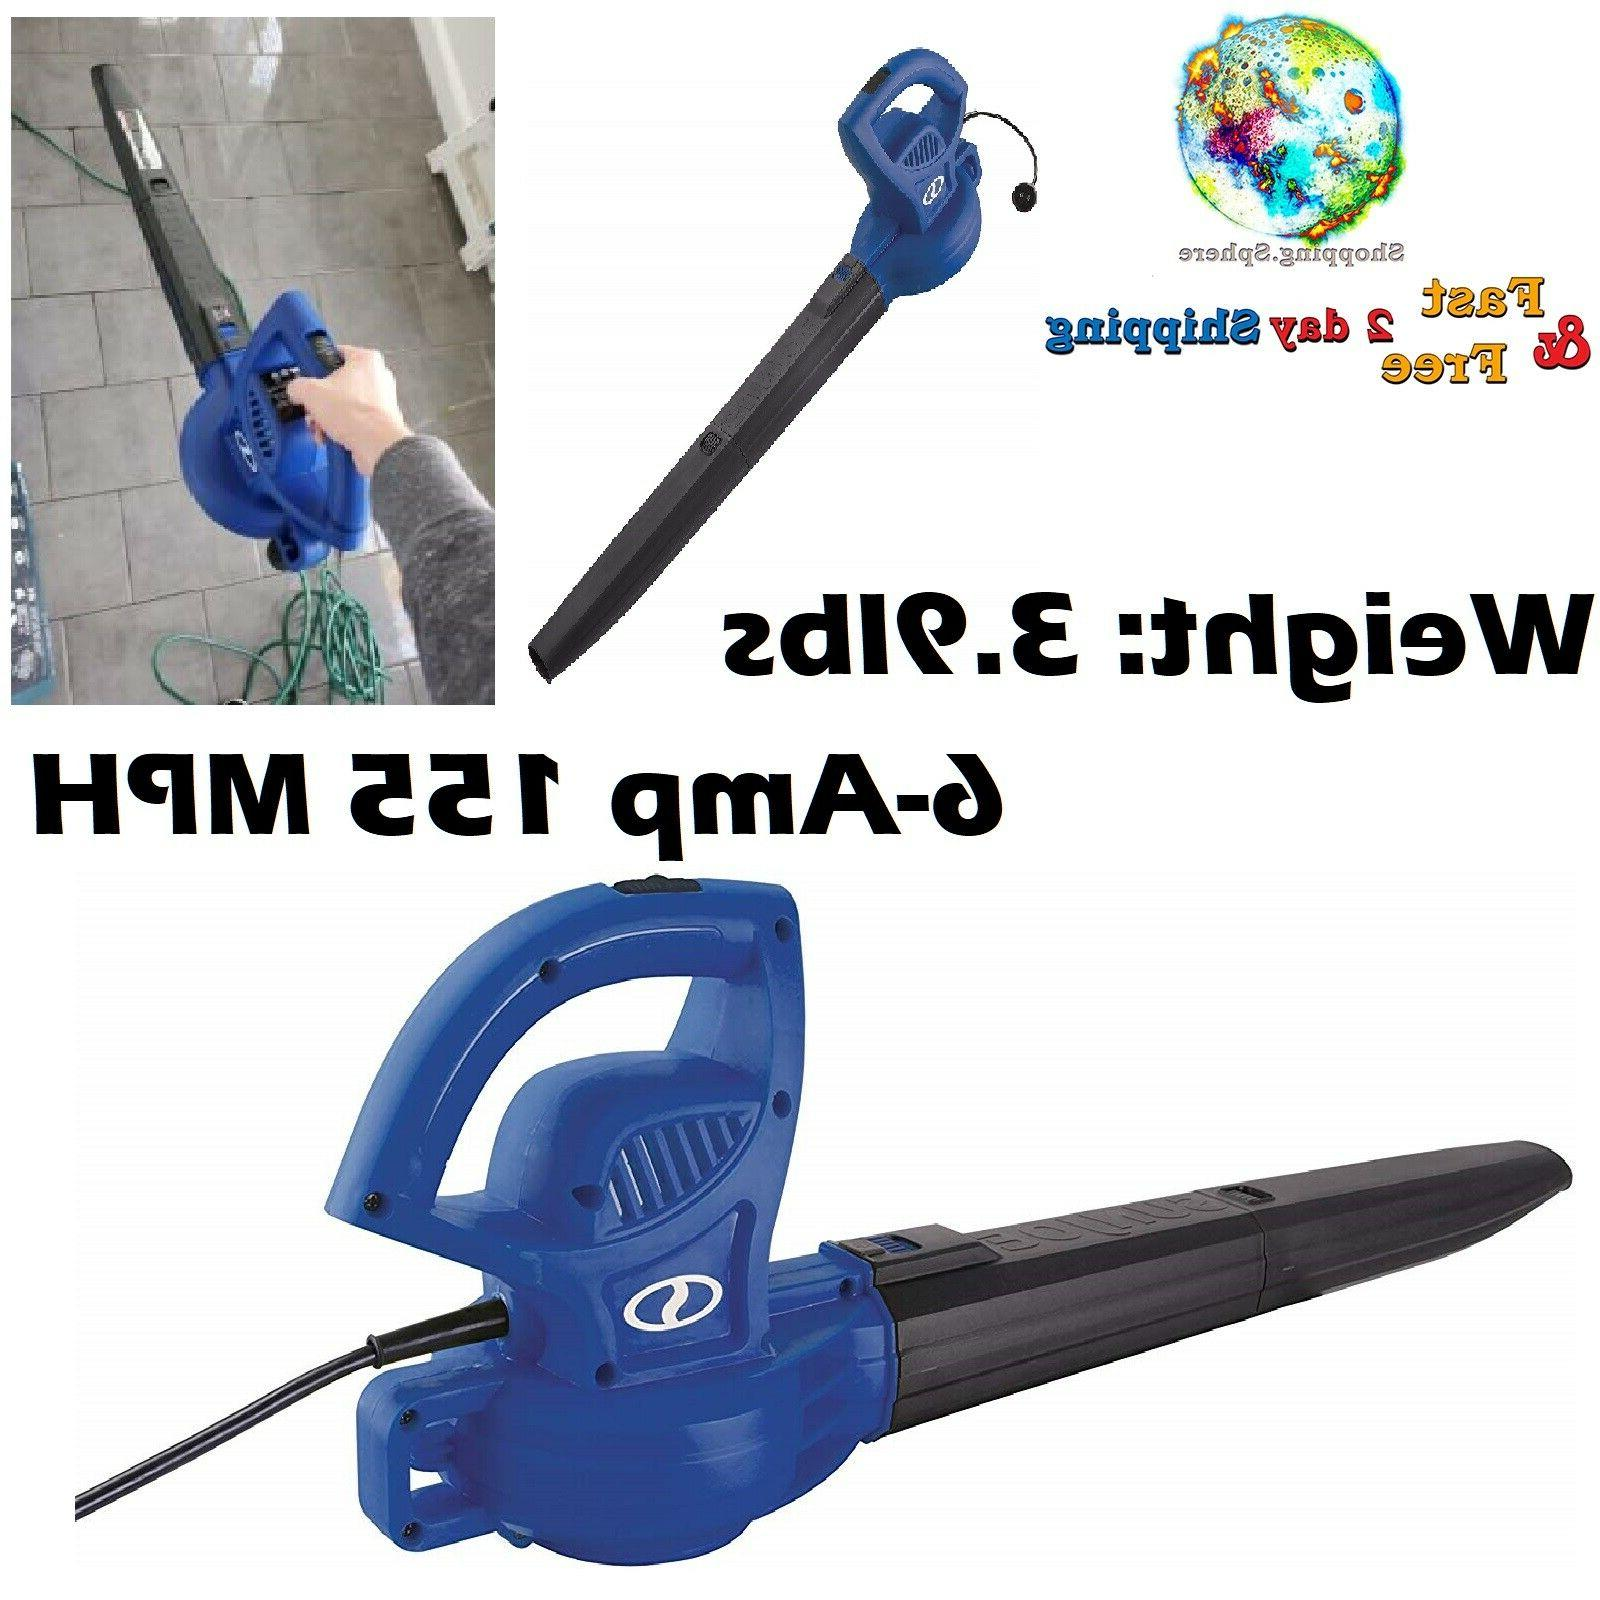 electric leaf blower corded handheld patio driveway